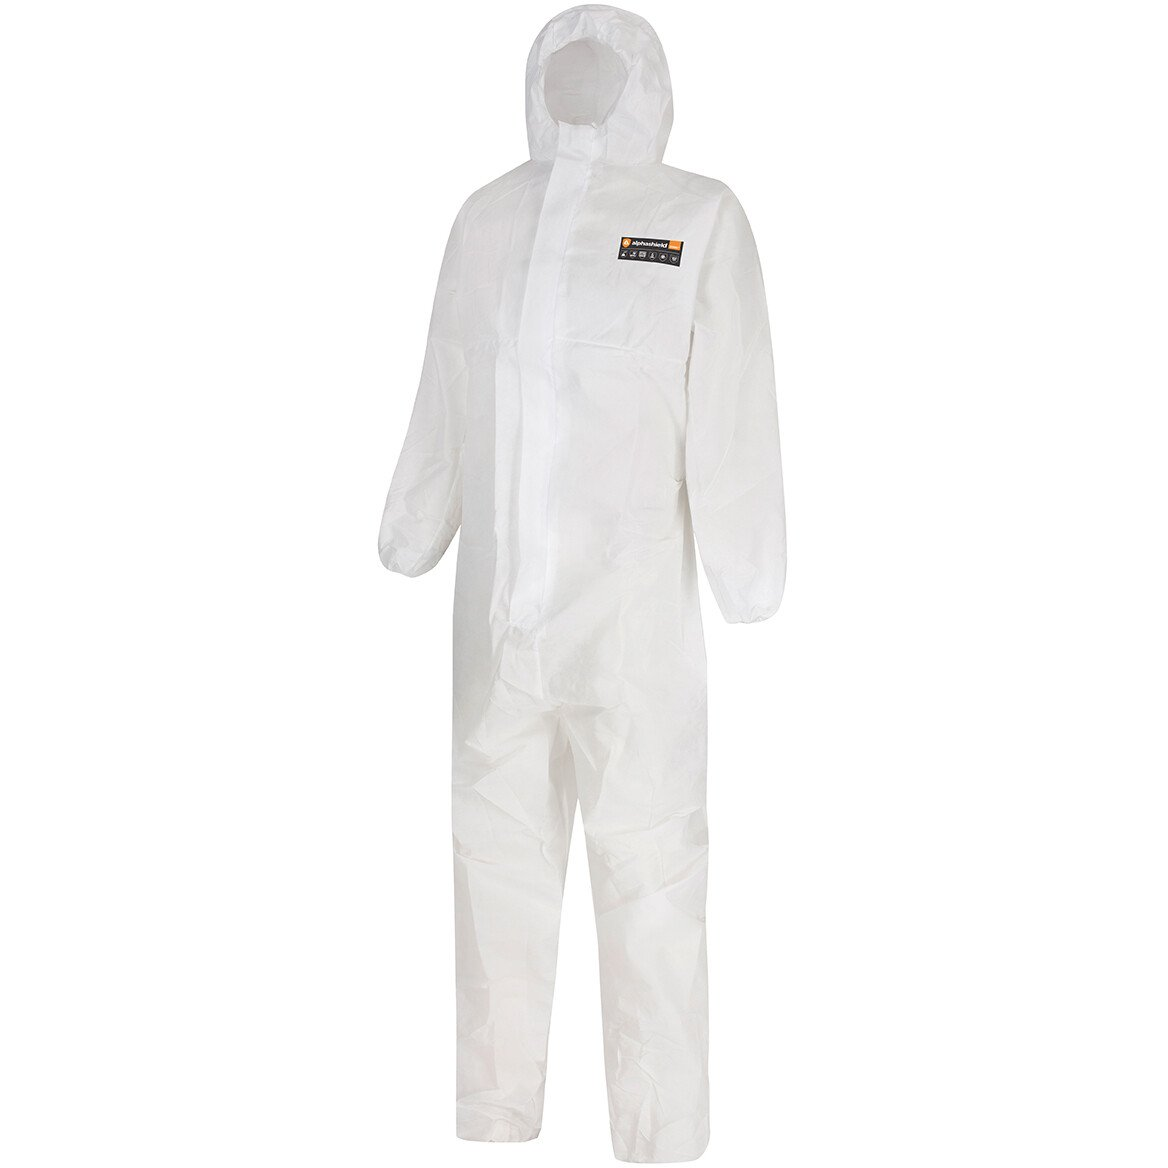 Alphashield 2000+ Disposable Coverall Category 3 Type 5 and 6, EN368 , ASTM F1670